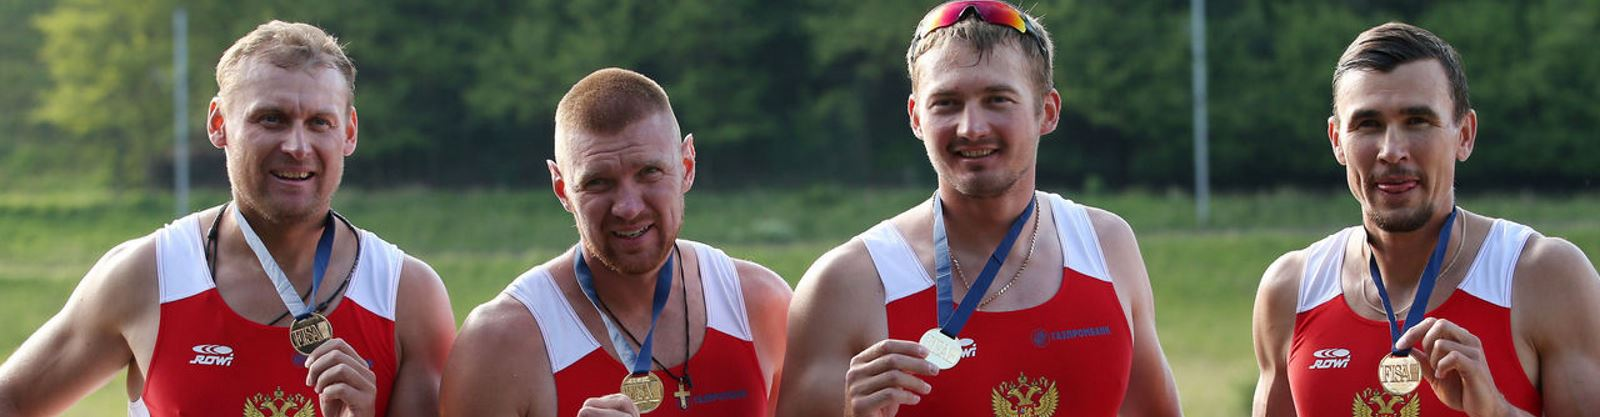 Russia rowing team